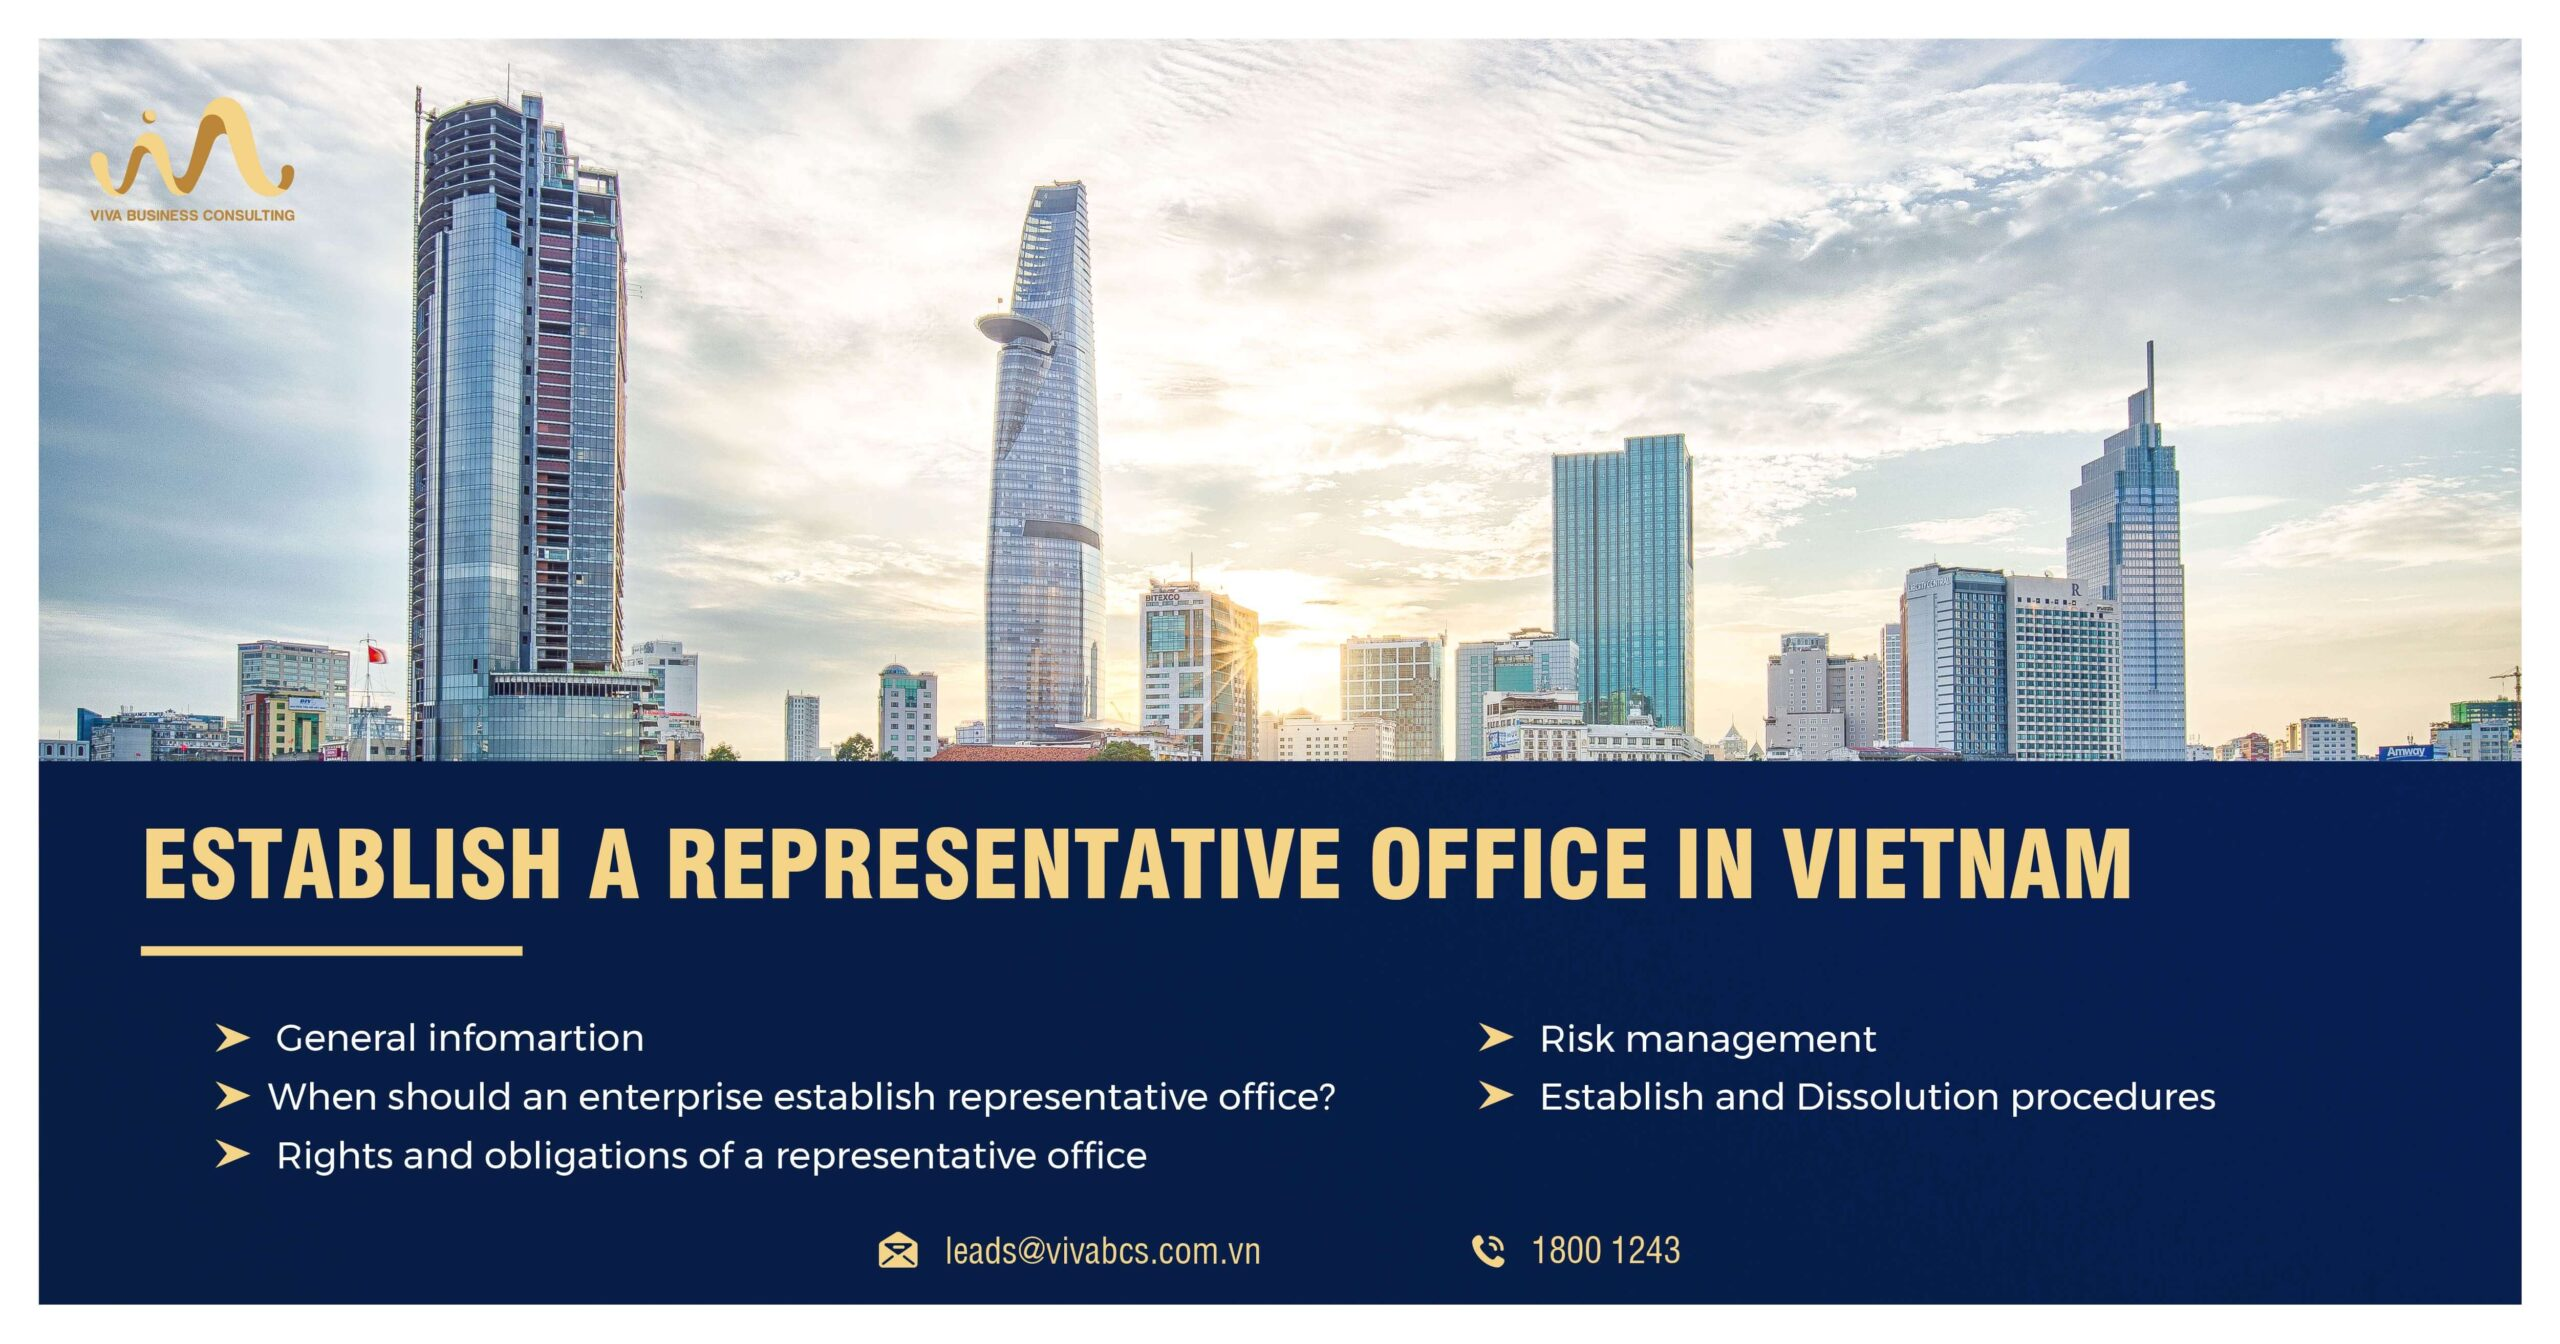 Establish representative office of an Enterprise in Vietnam